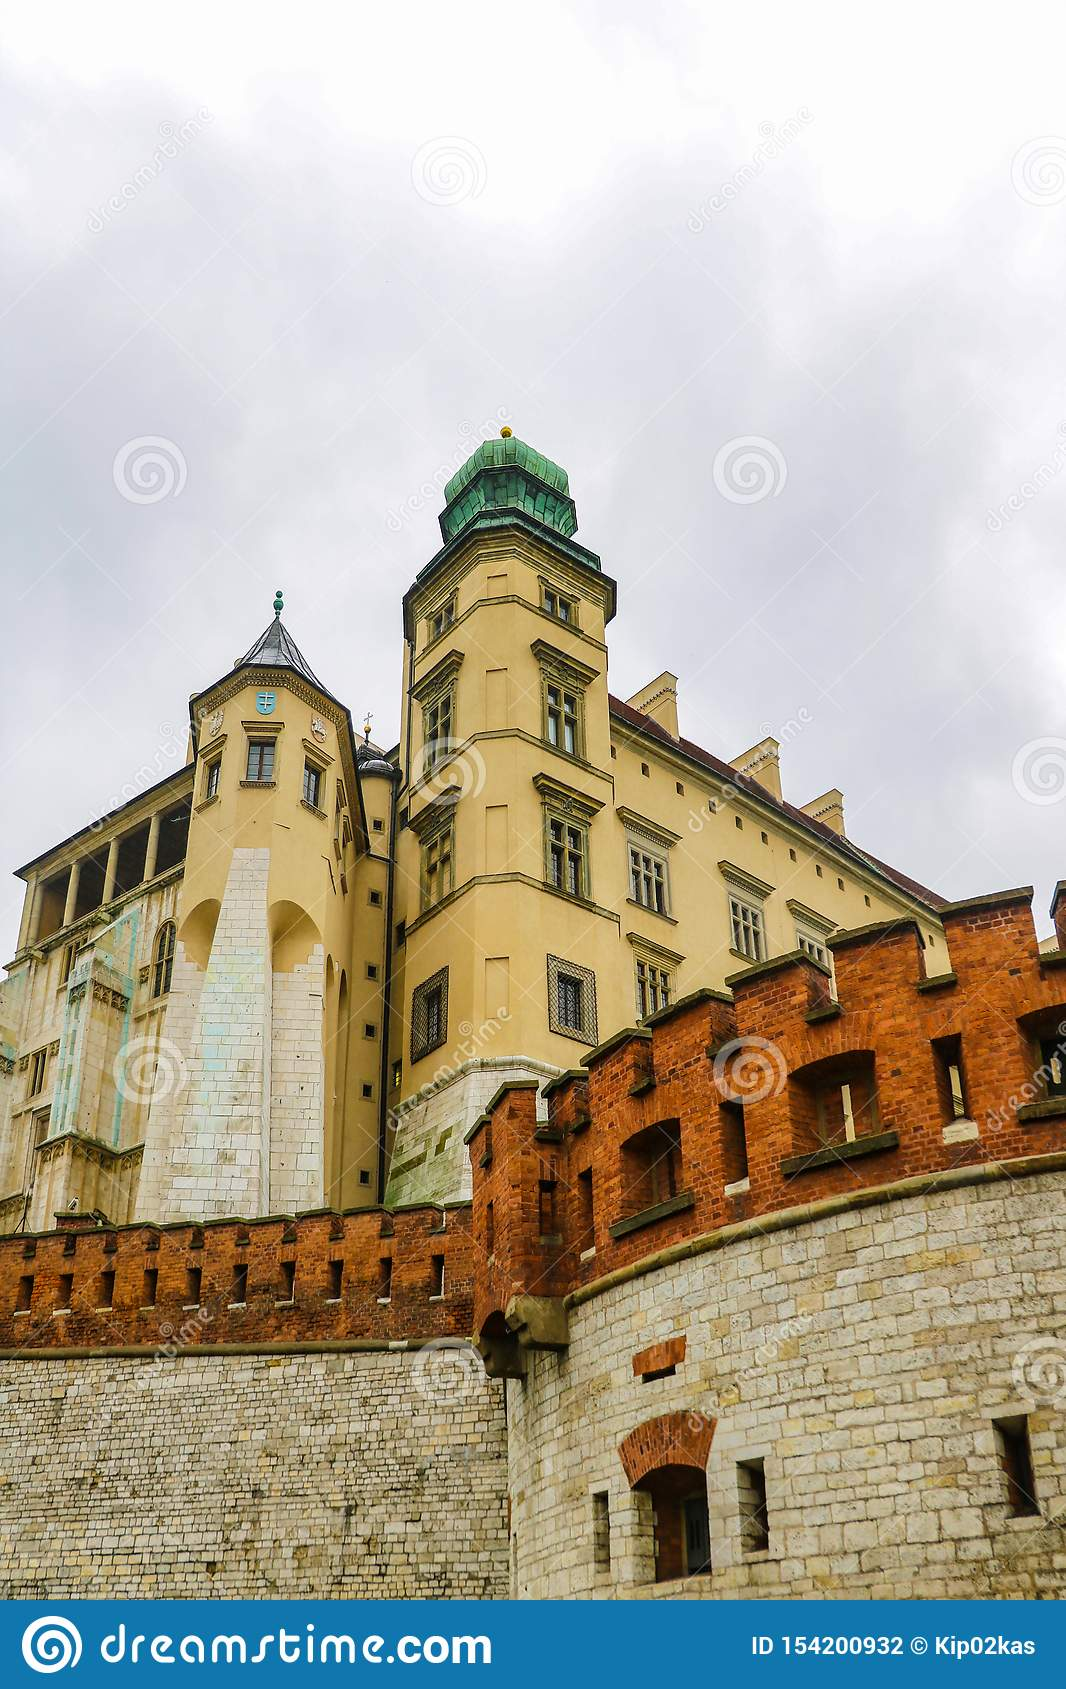 Krakow, Poland - May 21, 2019: Krakow - Poland`s historic center, a city with ancient architecture